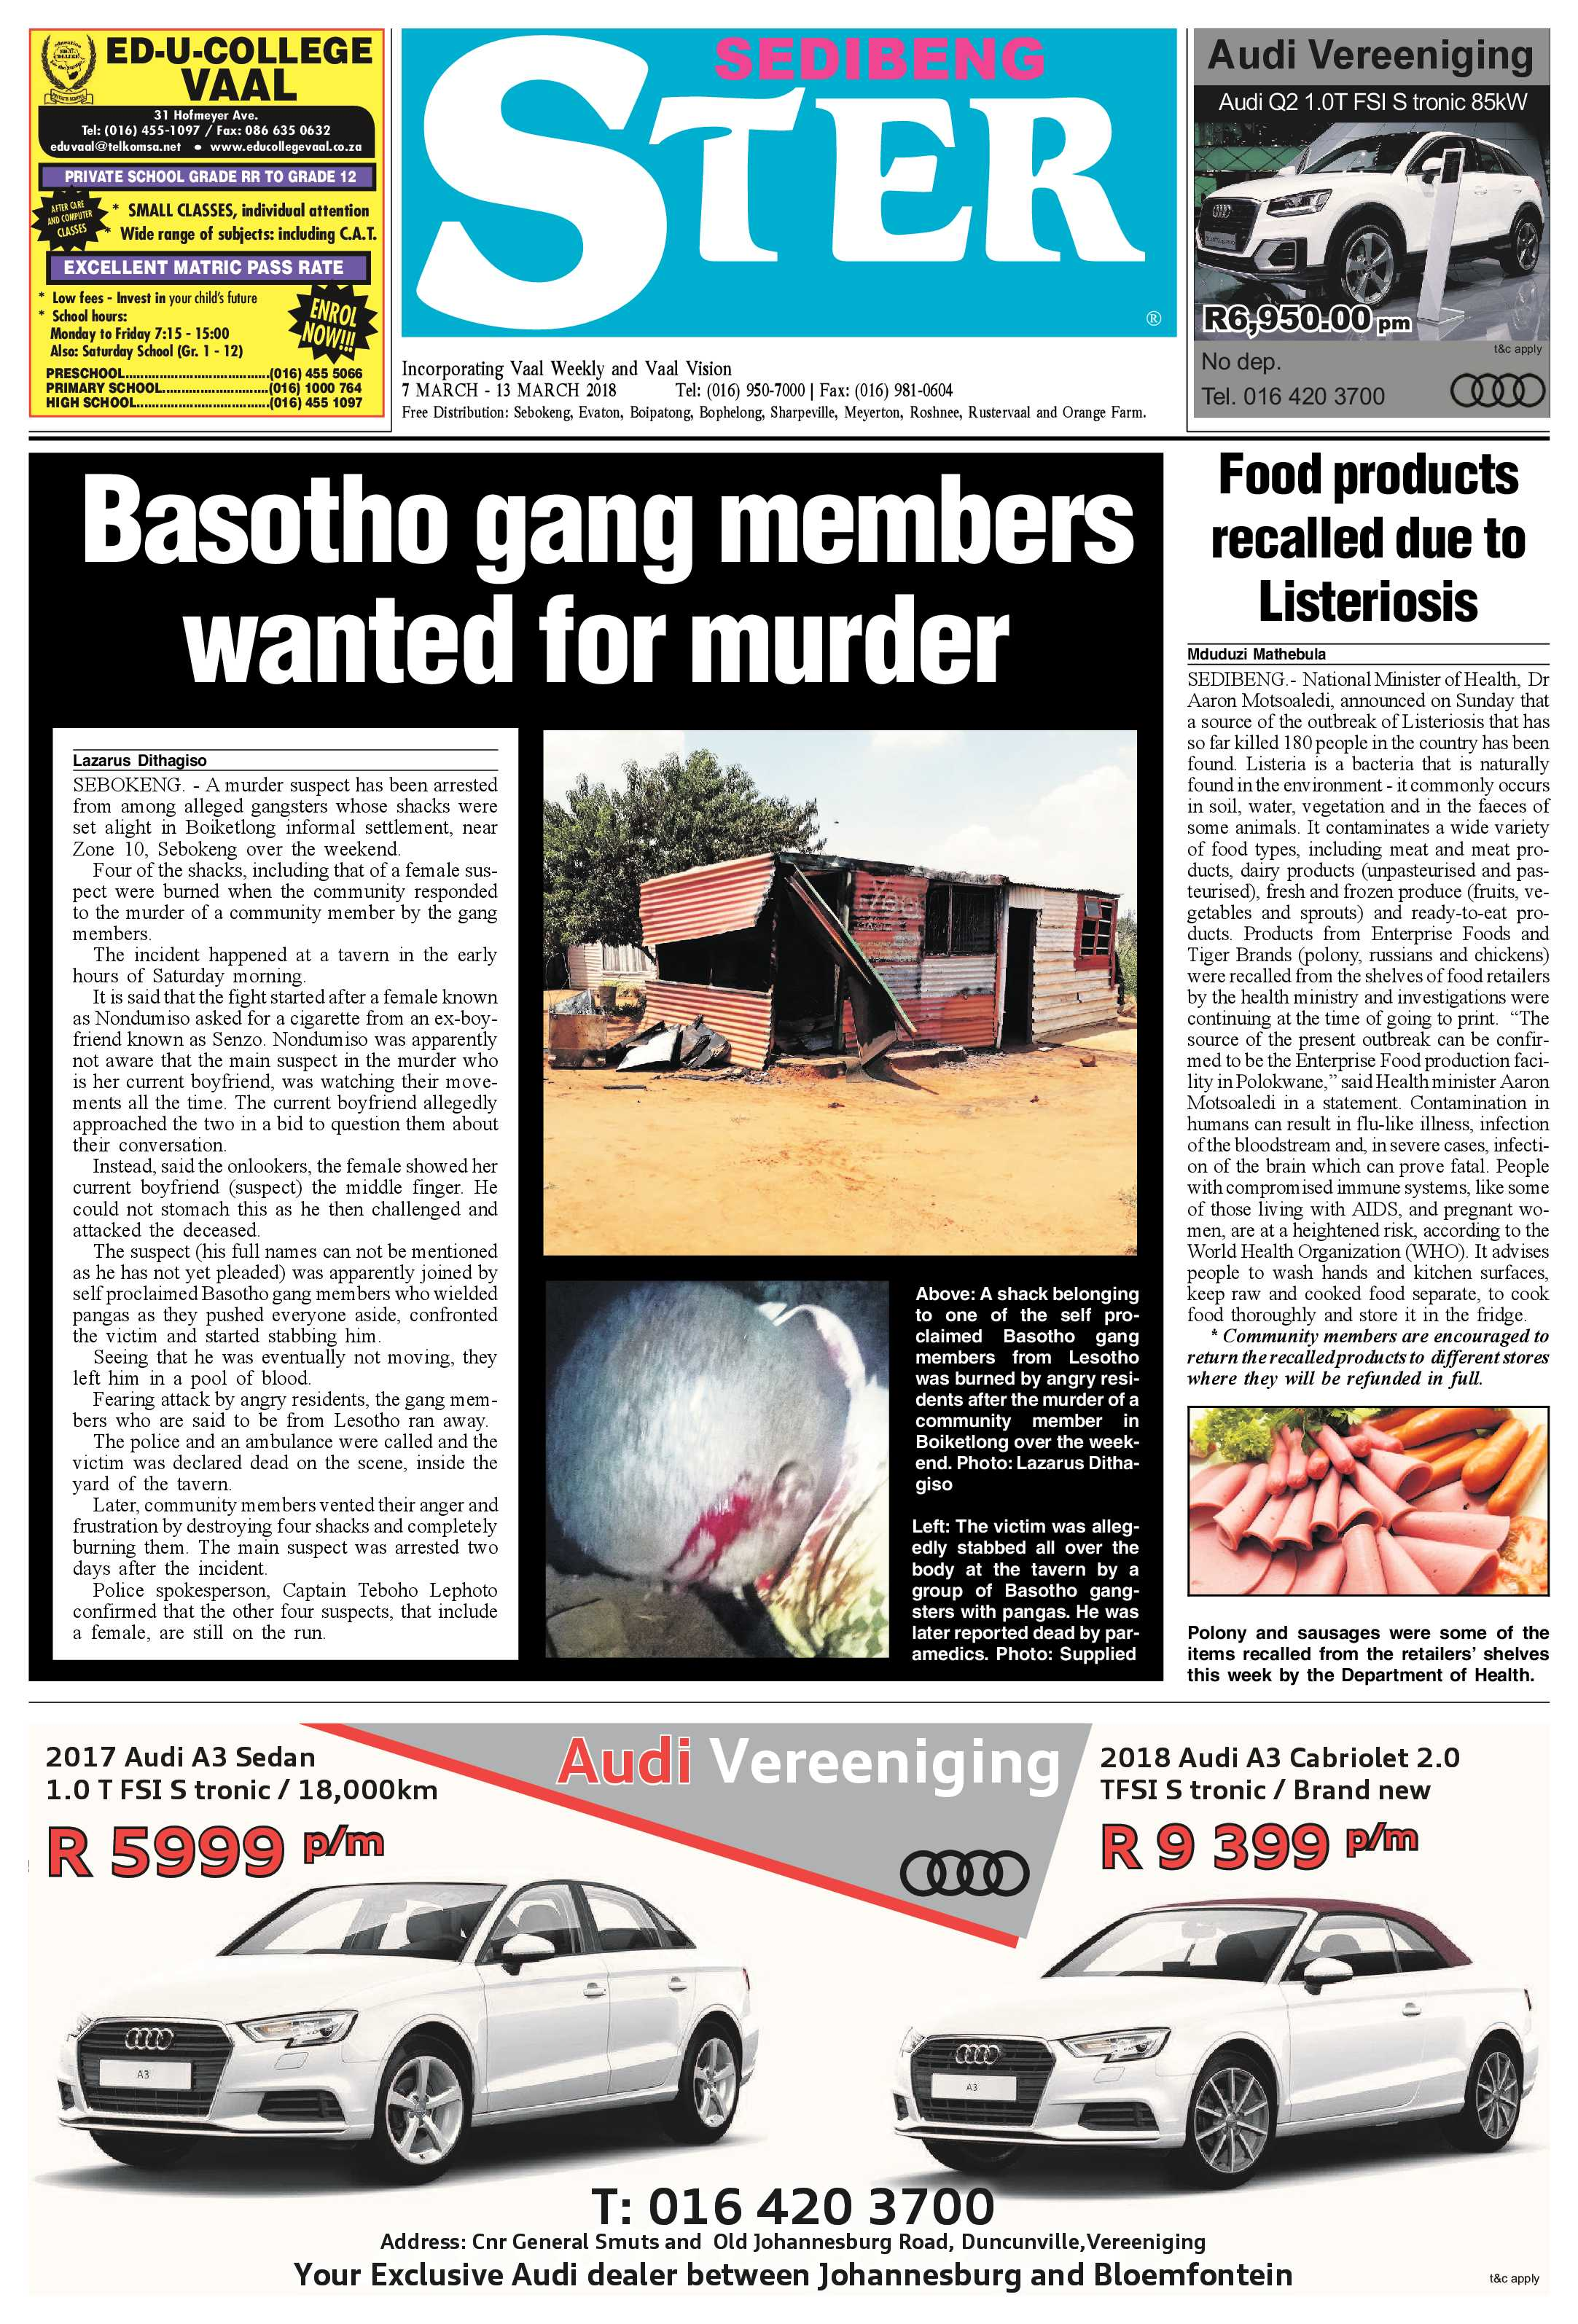 sedibeng-ster-7-13-march-2018-epapers-page-1